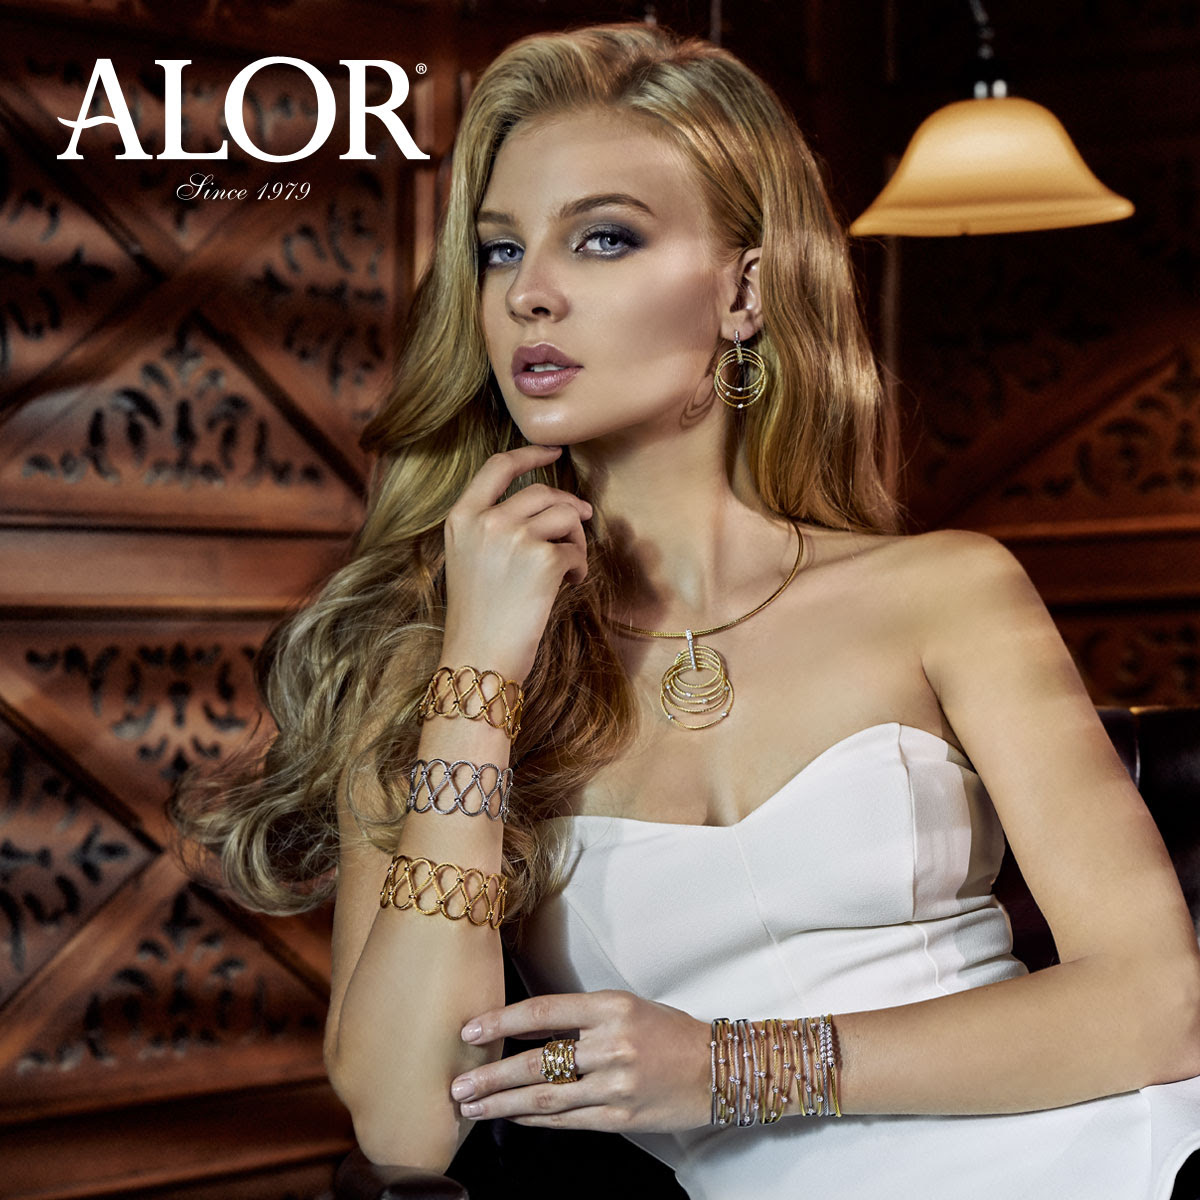 Showing Rings from the stunning collection of designer rings created by  ALOR